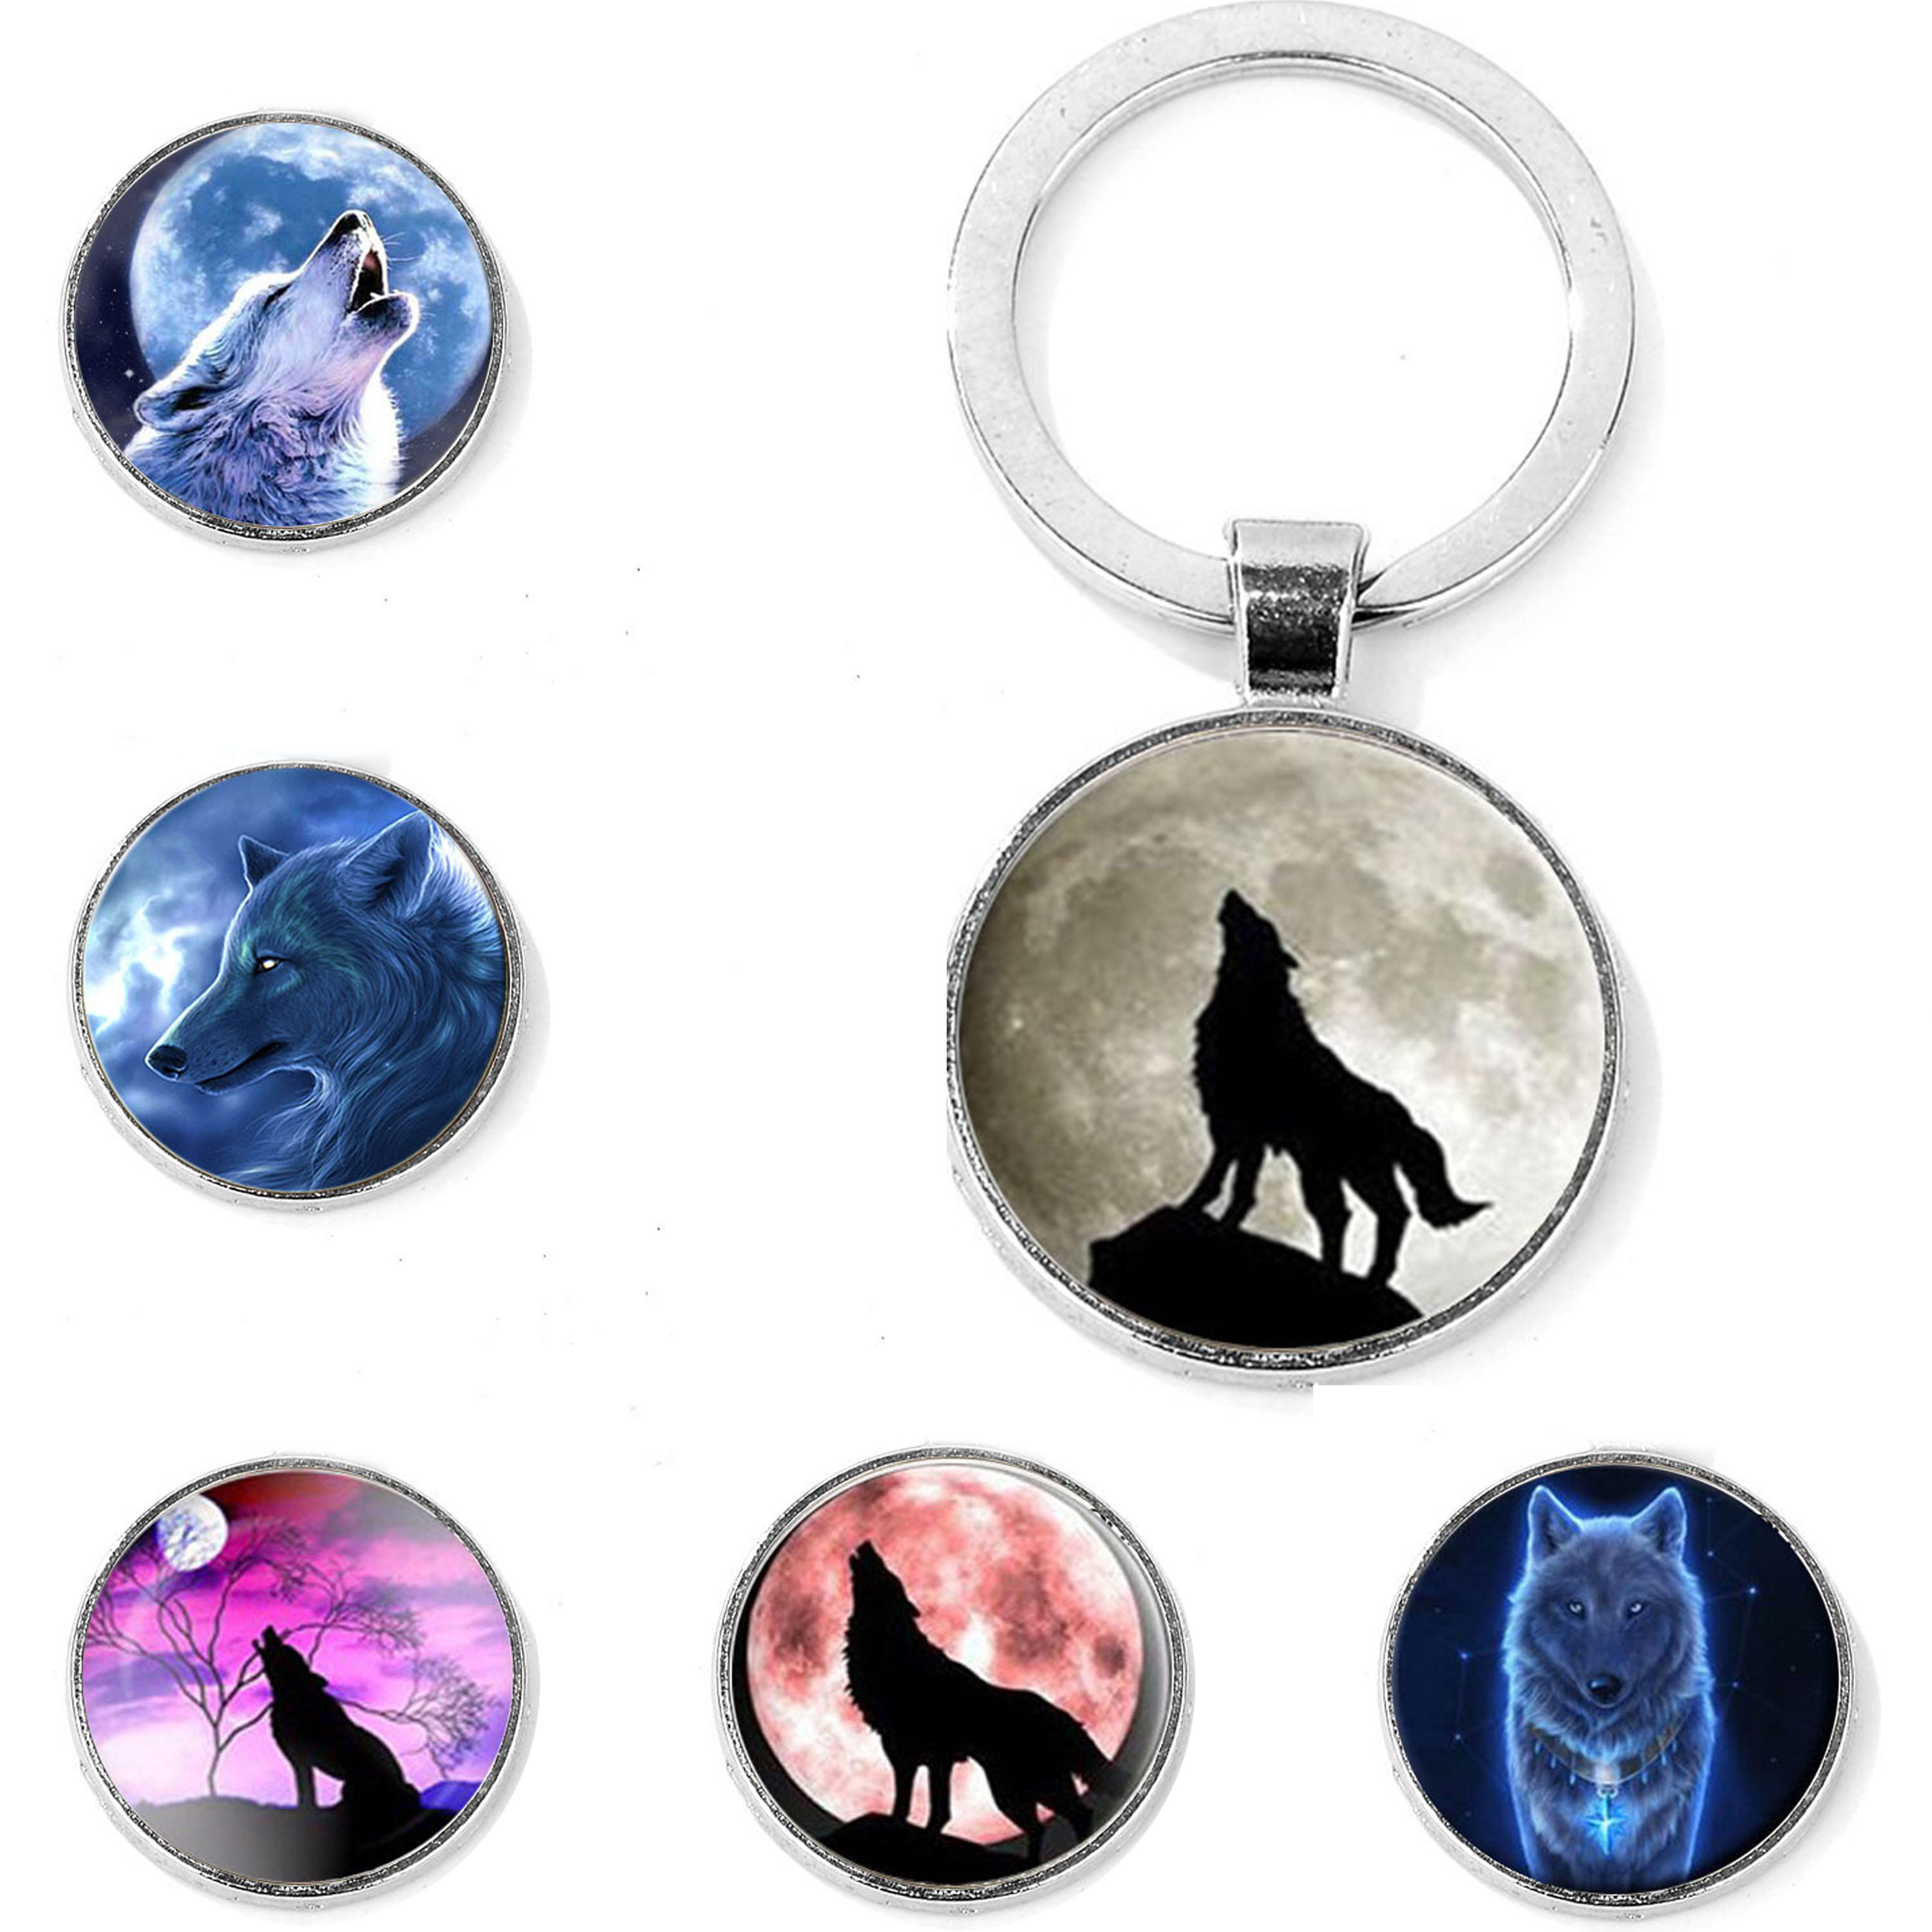 SONGDA Nordic Wiccan Wolf & Moon Keychain Cool Aggressive Wolf Howling Photo Glass Dome Key Chain For Men Fashion Animal Jewelry